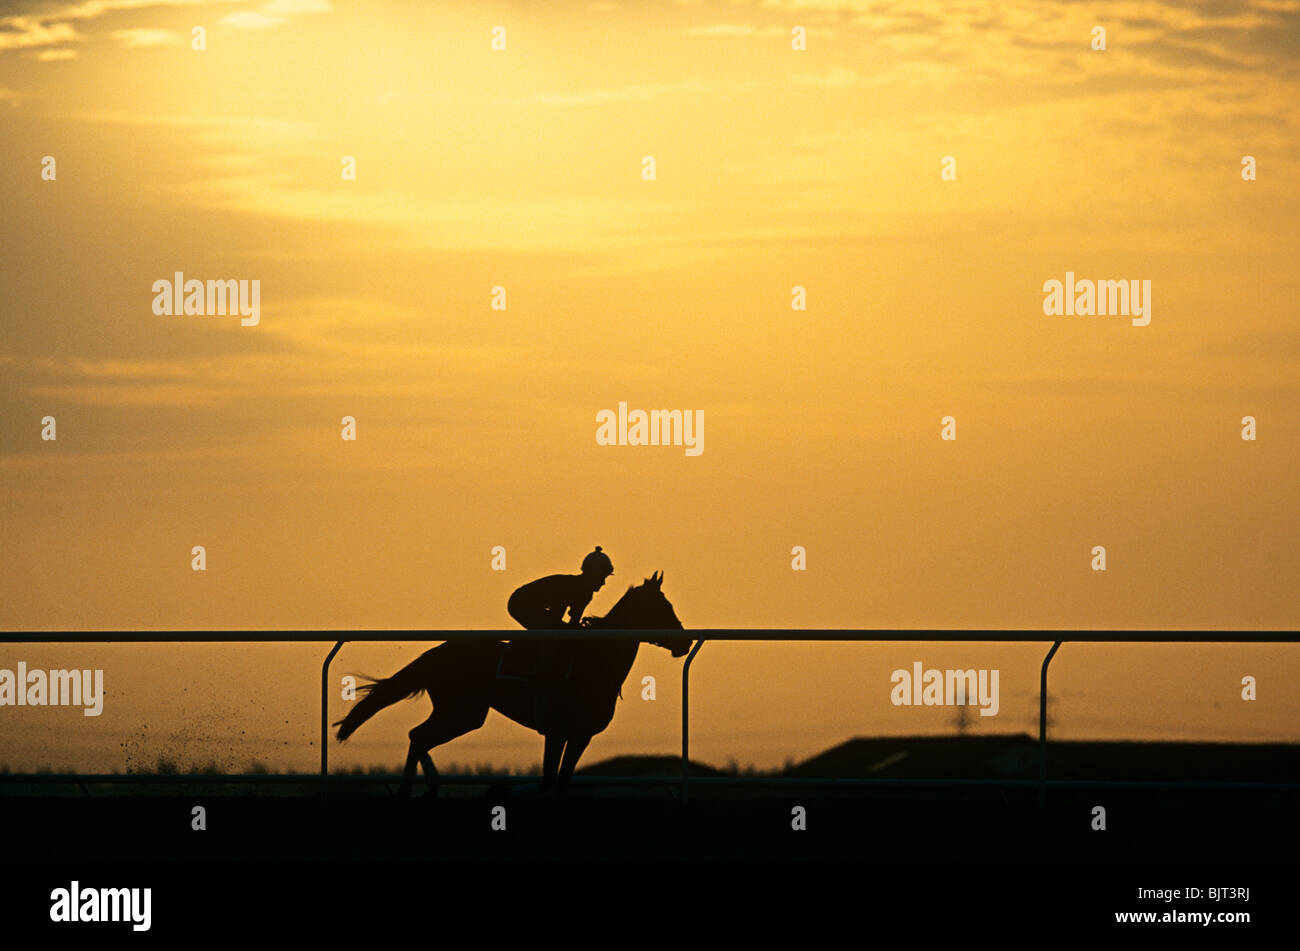 A silhouette of a jockey riding a horse - Stock Image